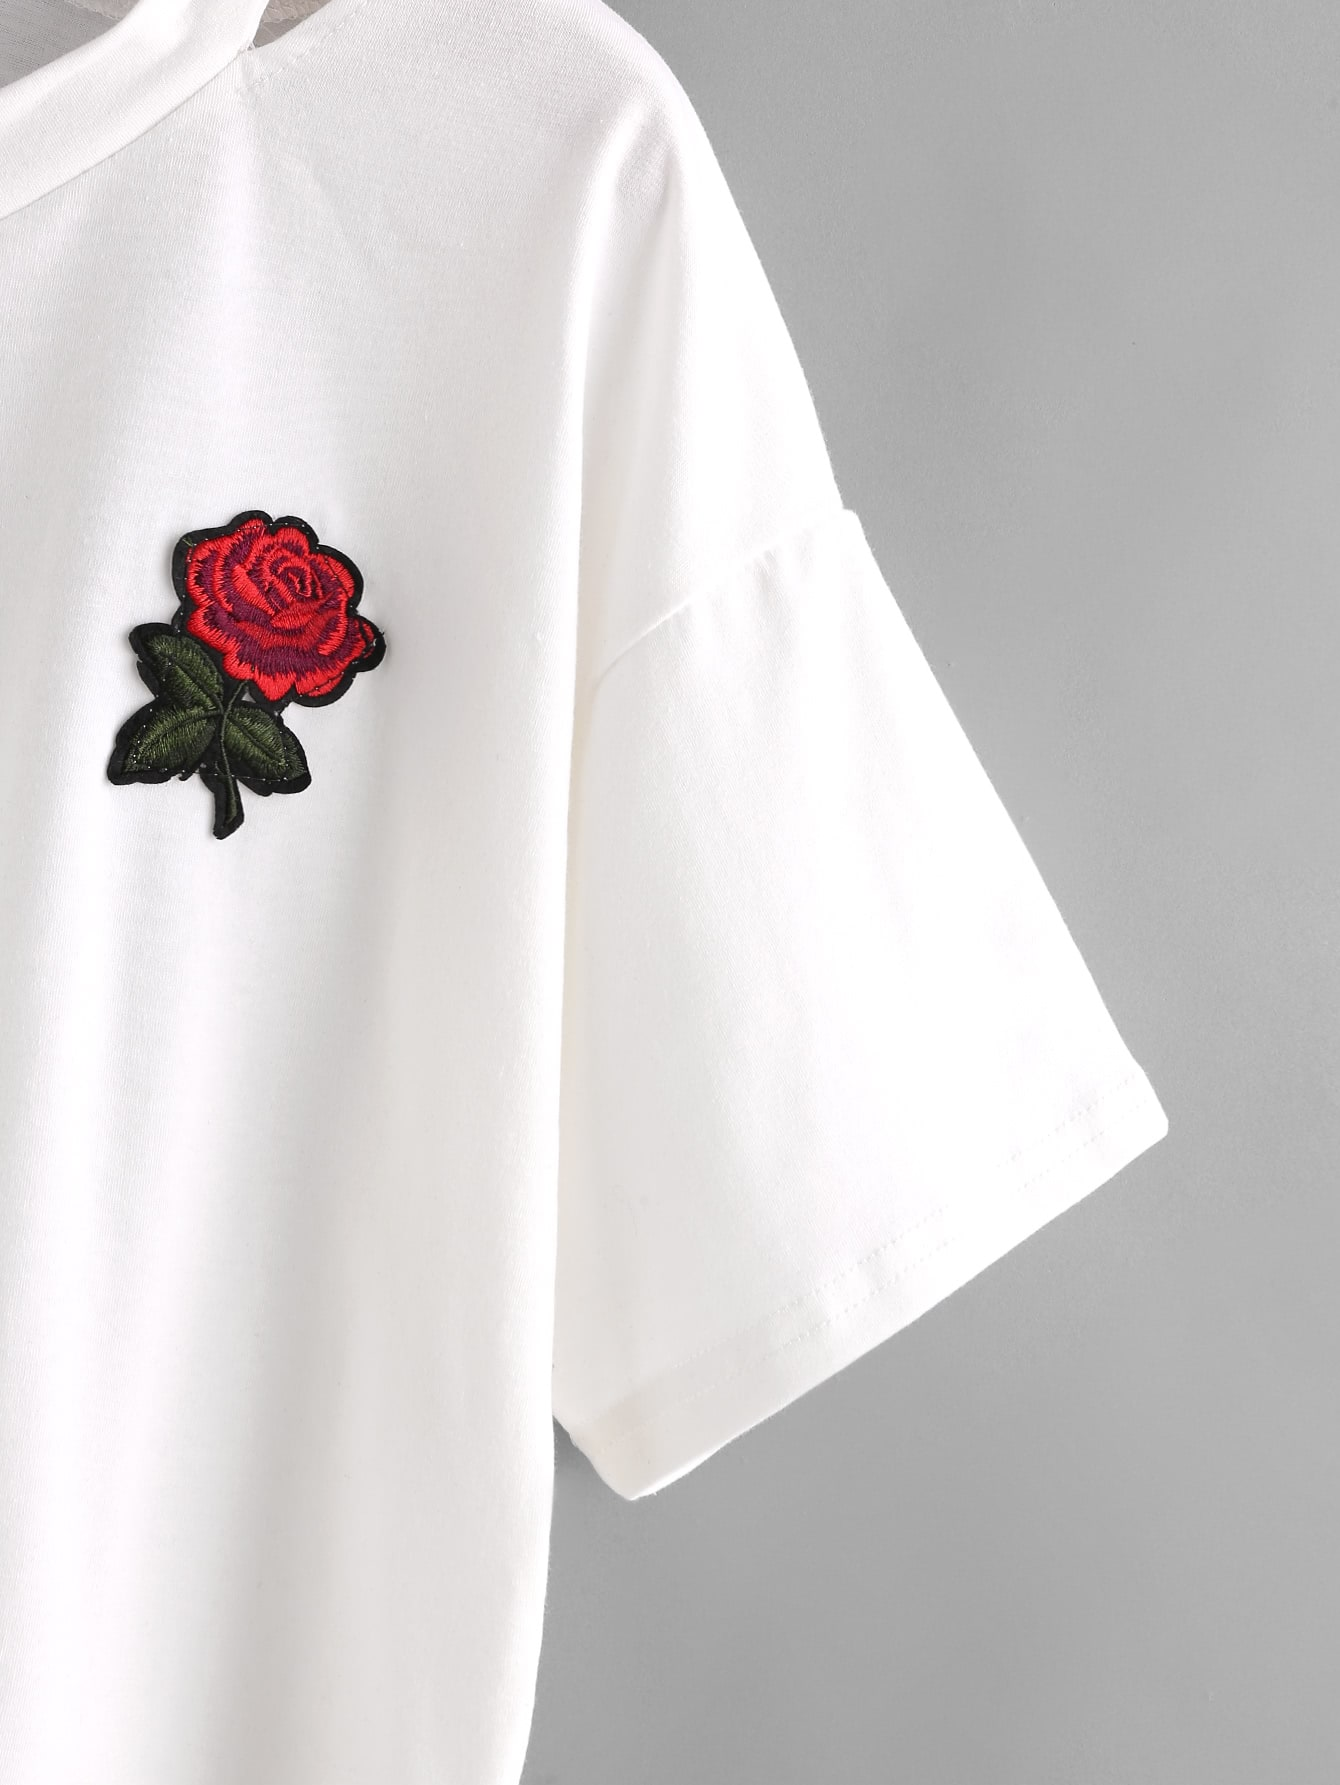 Cut out neck rose embroidered patch teefor women romwe